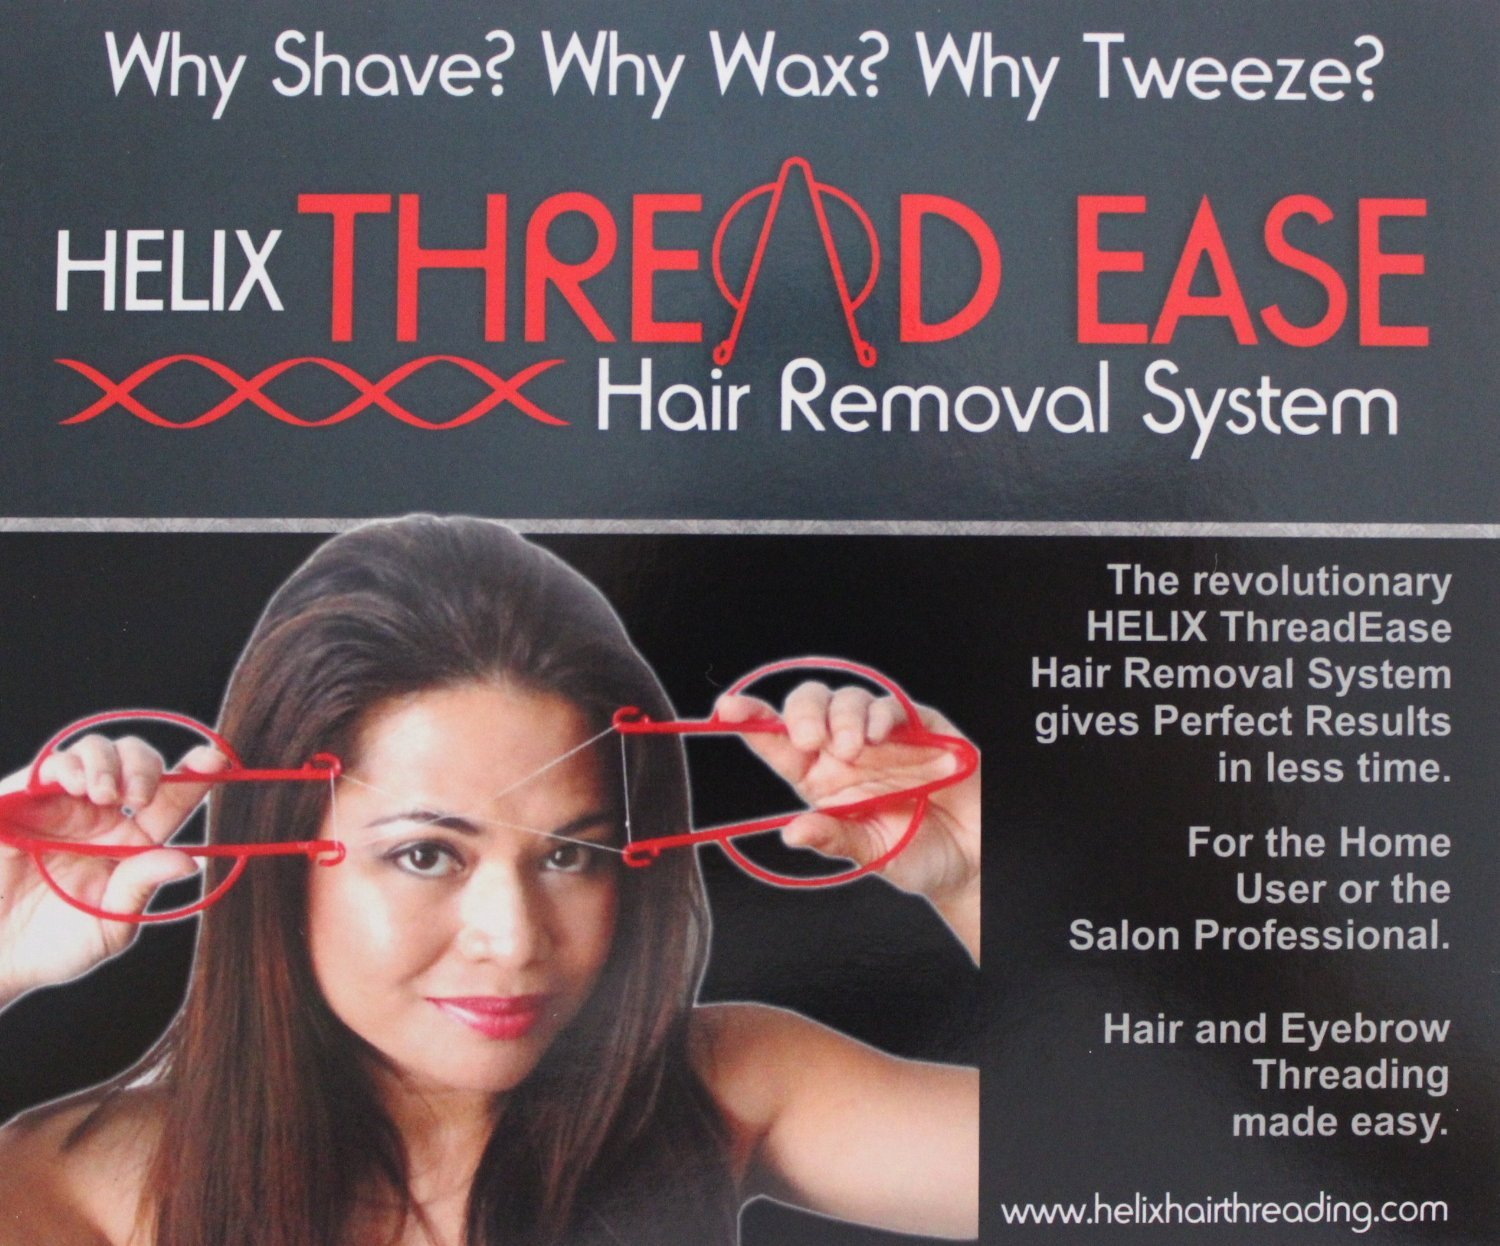 Helix Thread Ease Hair Removal System - Hair and Eyebrow Threading